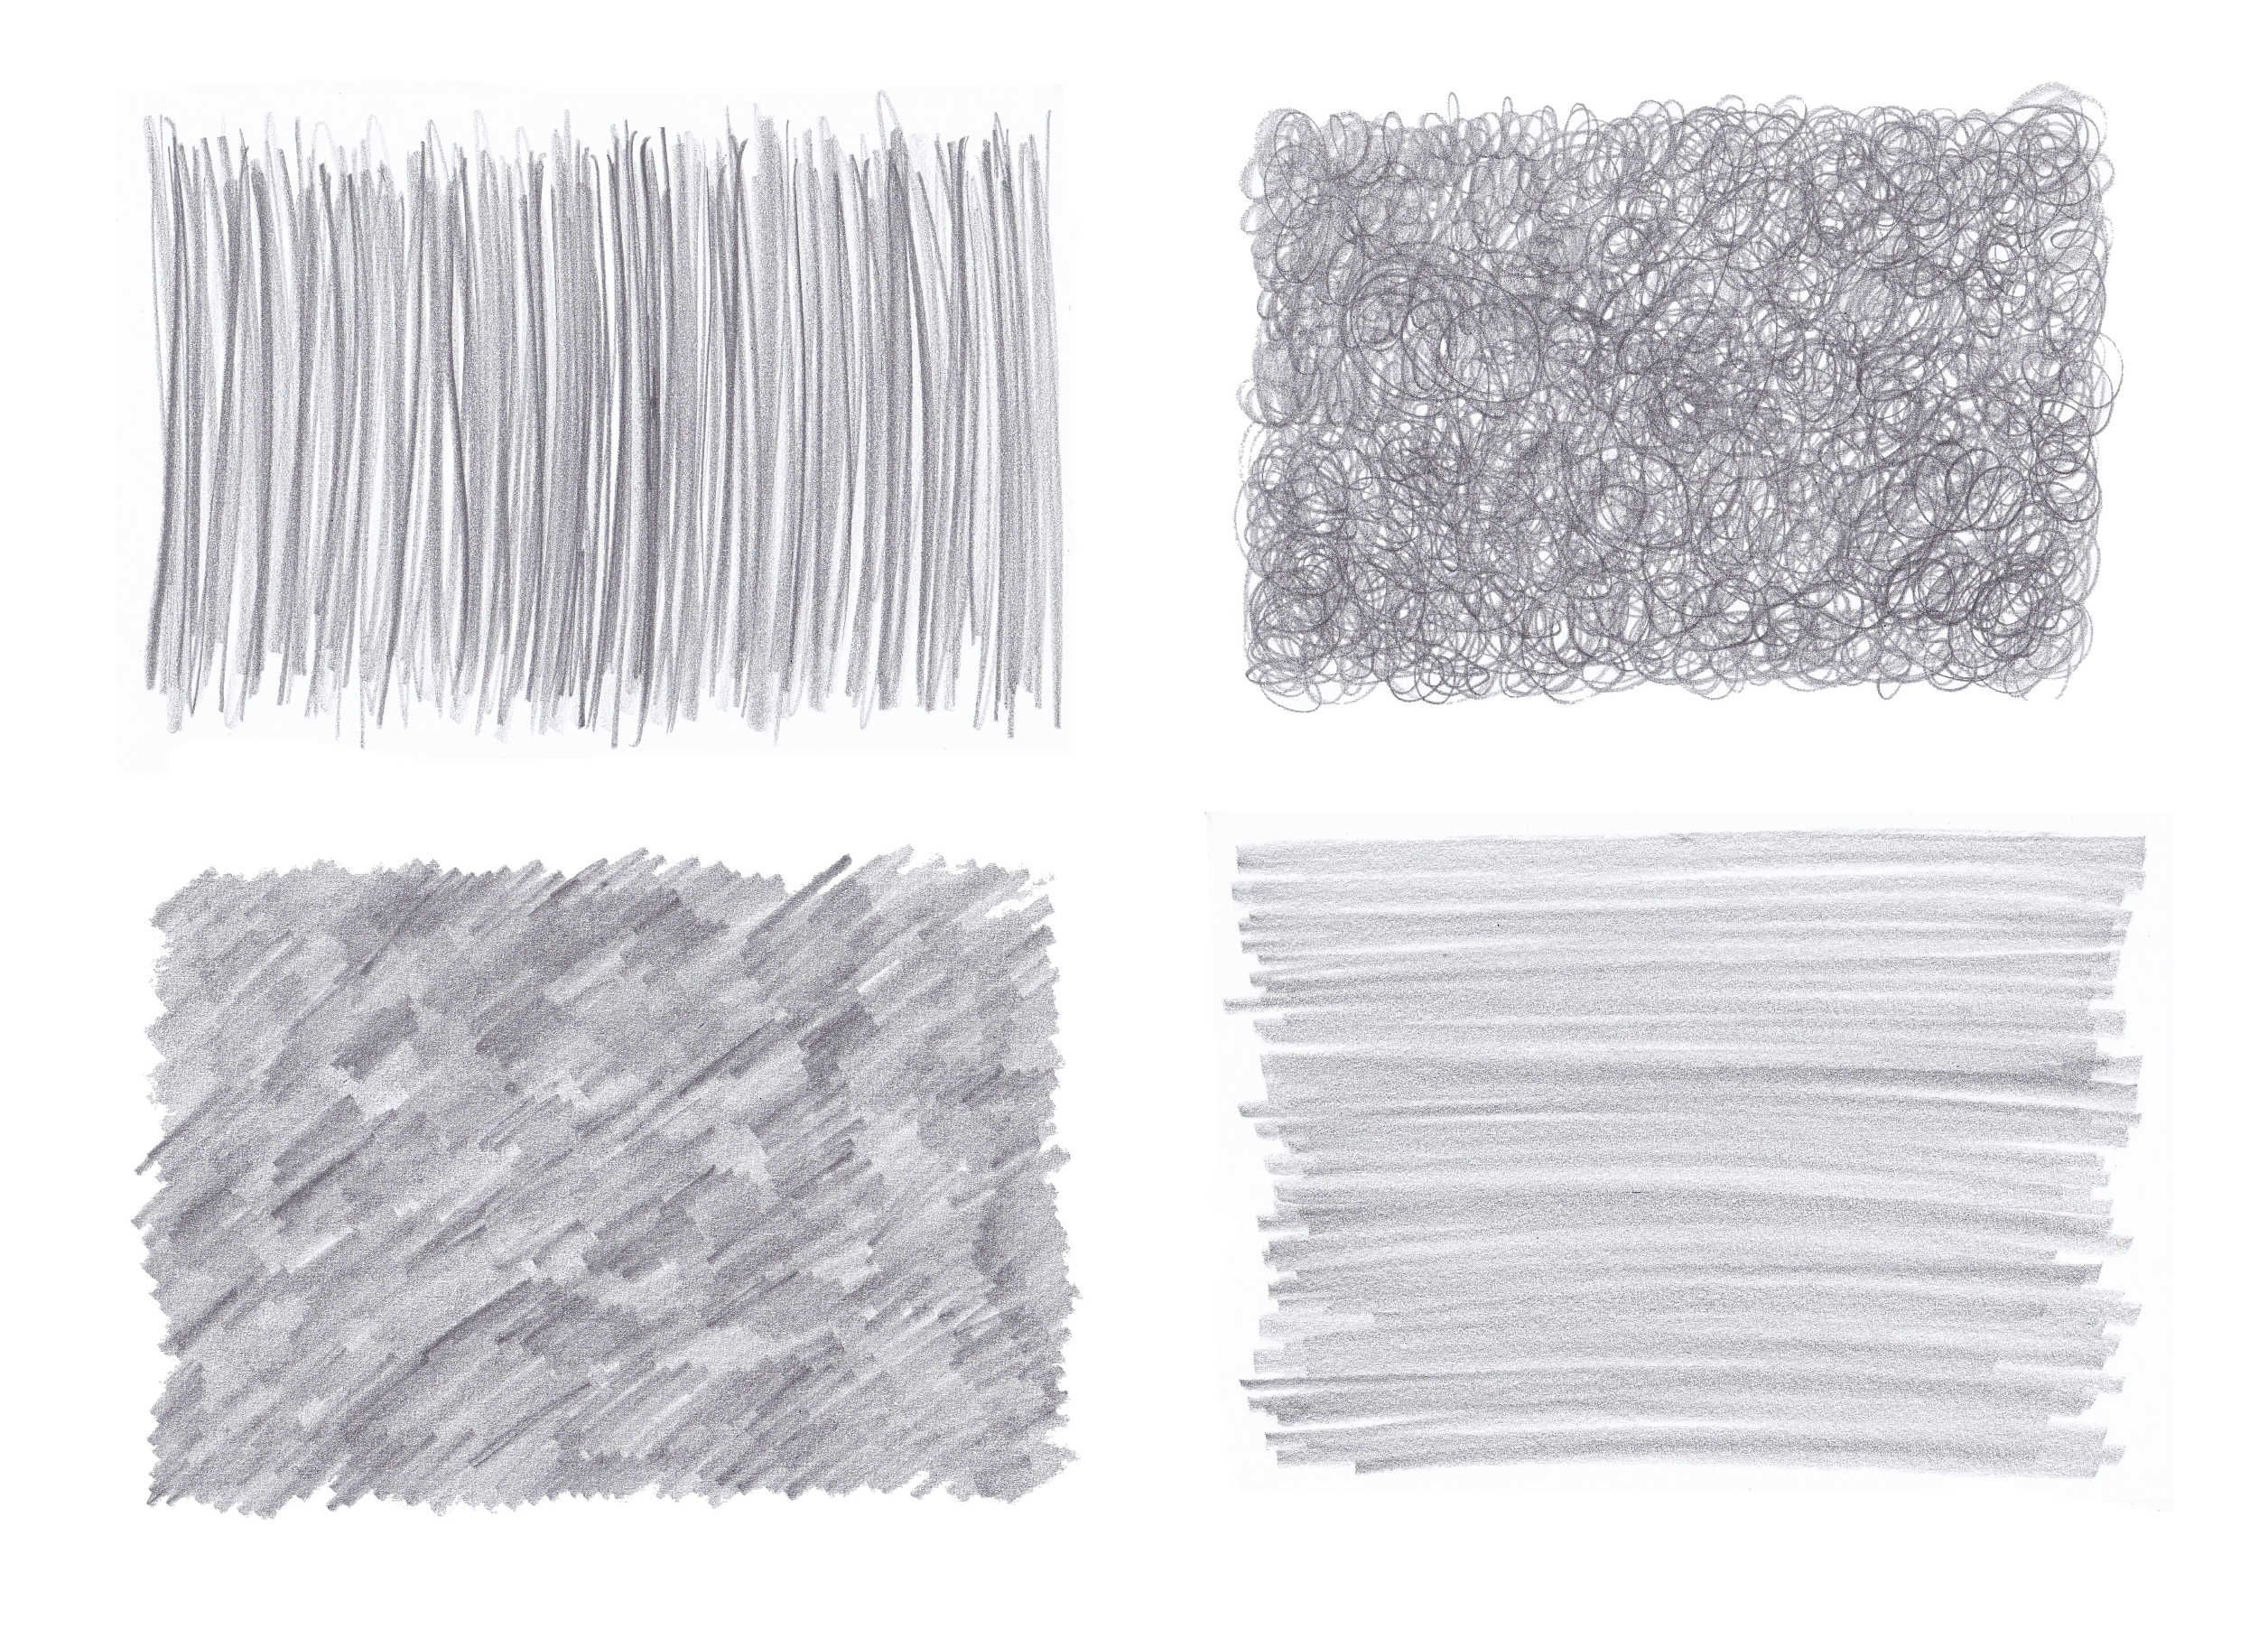 4 pencil graphite drawing texture jpg